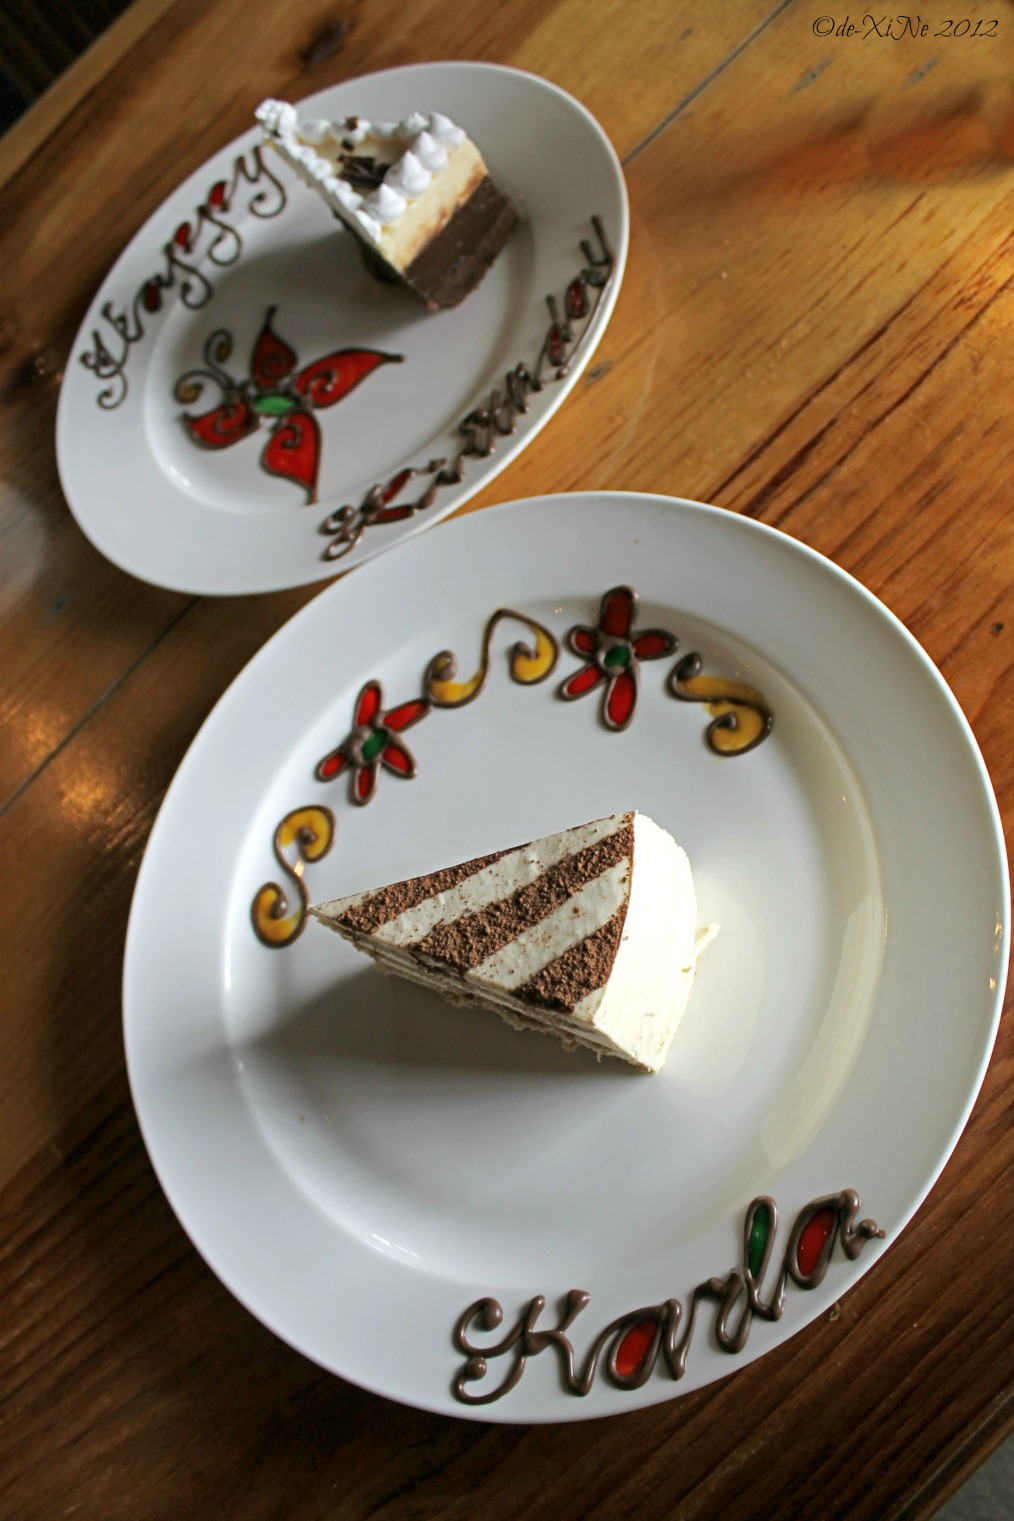 Forest House cakes and plate art